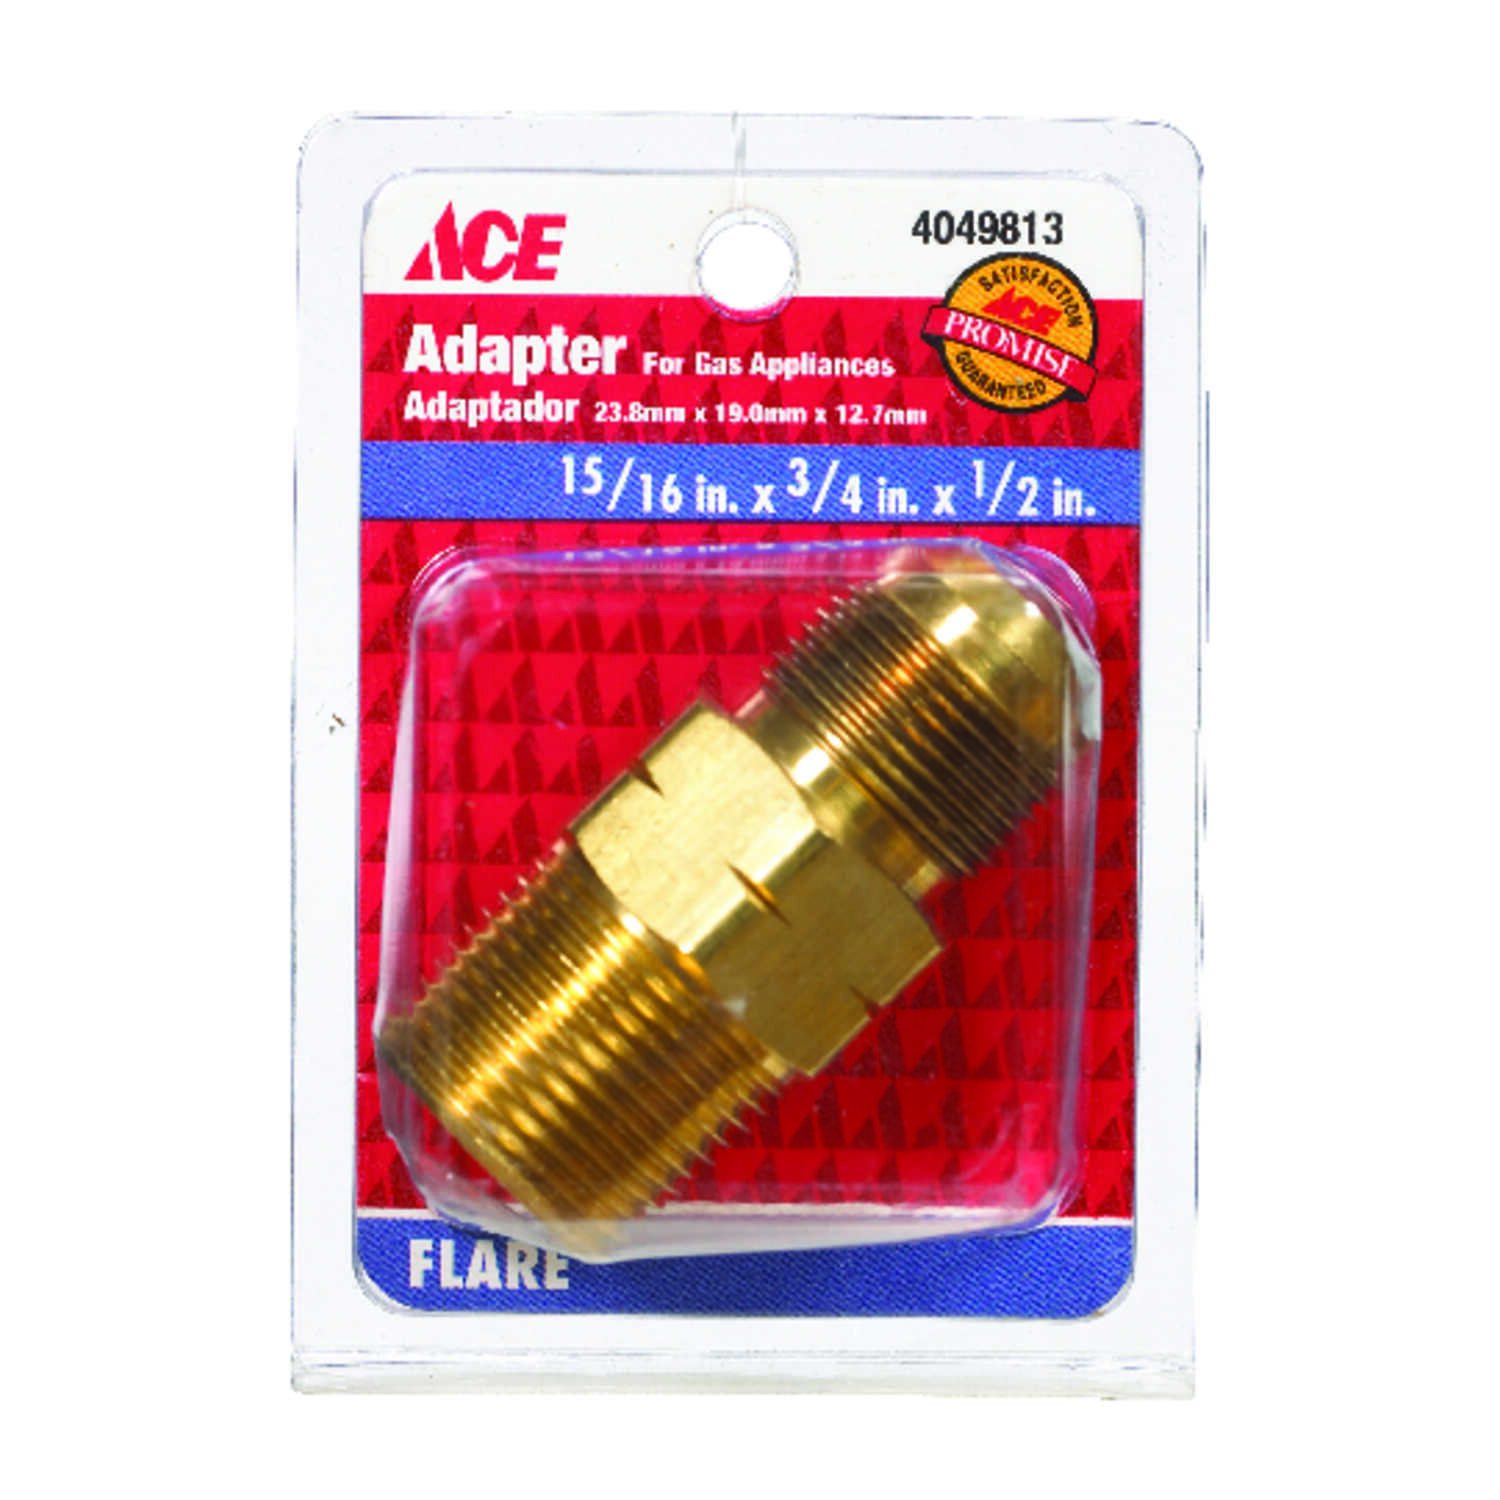 Ace  15/16 in. Flare   x 3/4 in. Dia. Male  Brass  Flare Adapter